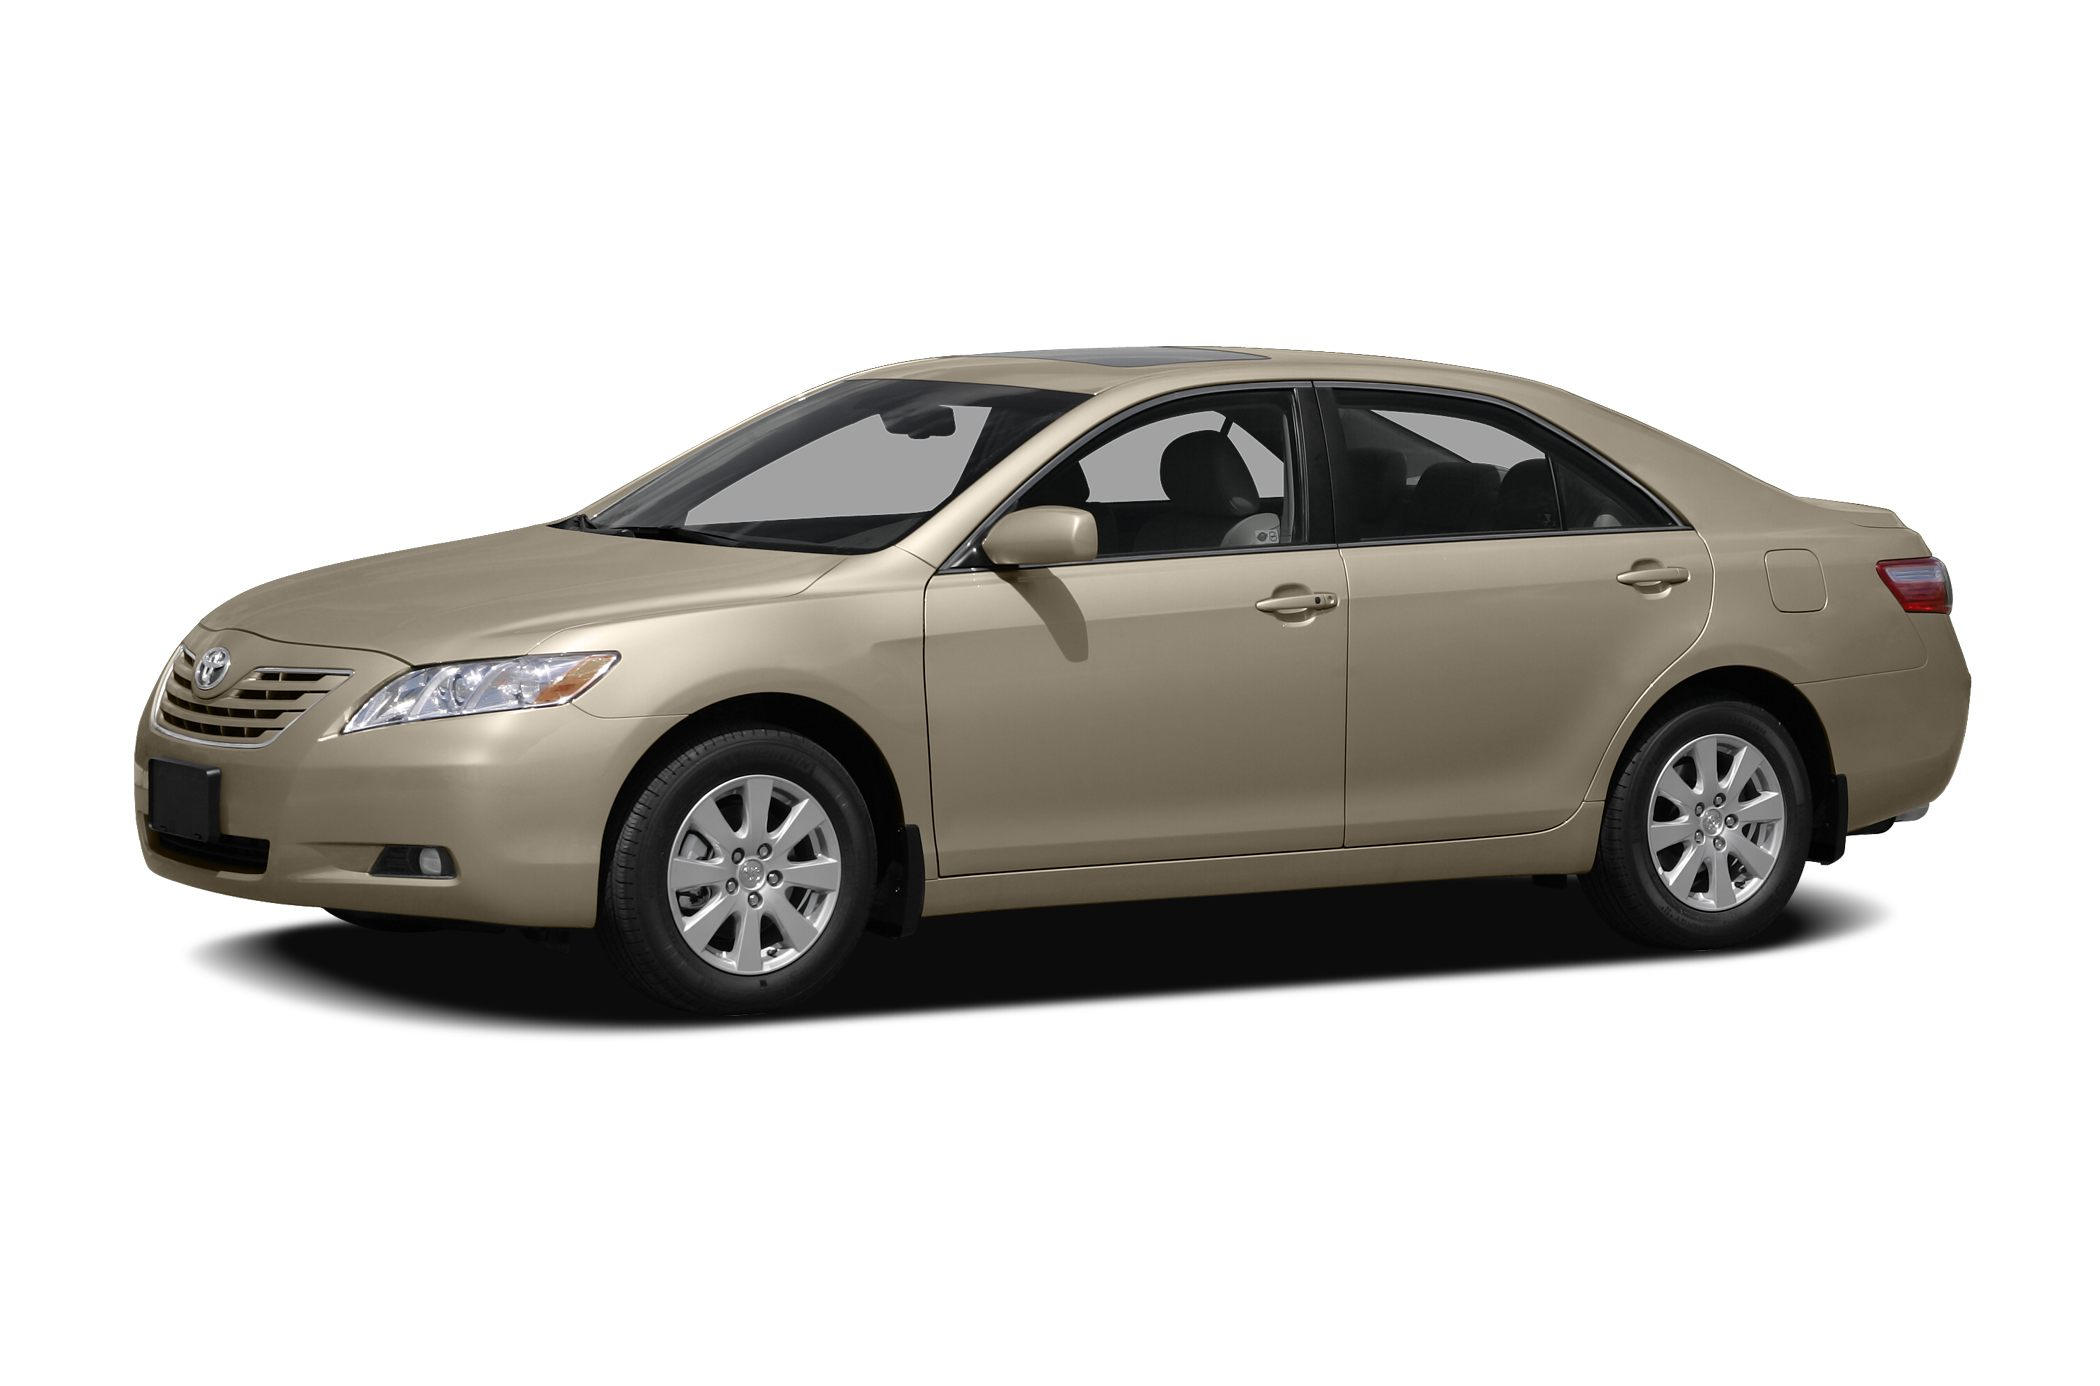 2008 Toyota Camry LE Sedan for sale in Fayetteville for $11,997 with 72,807 miles